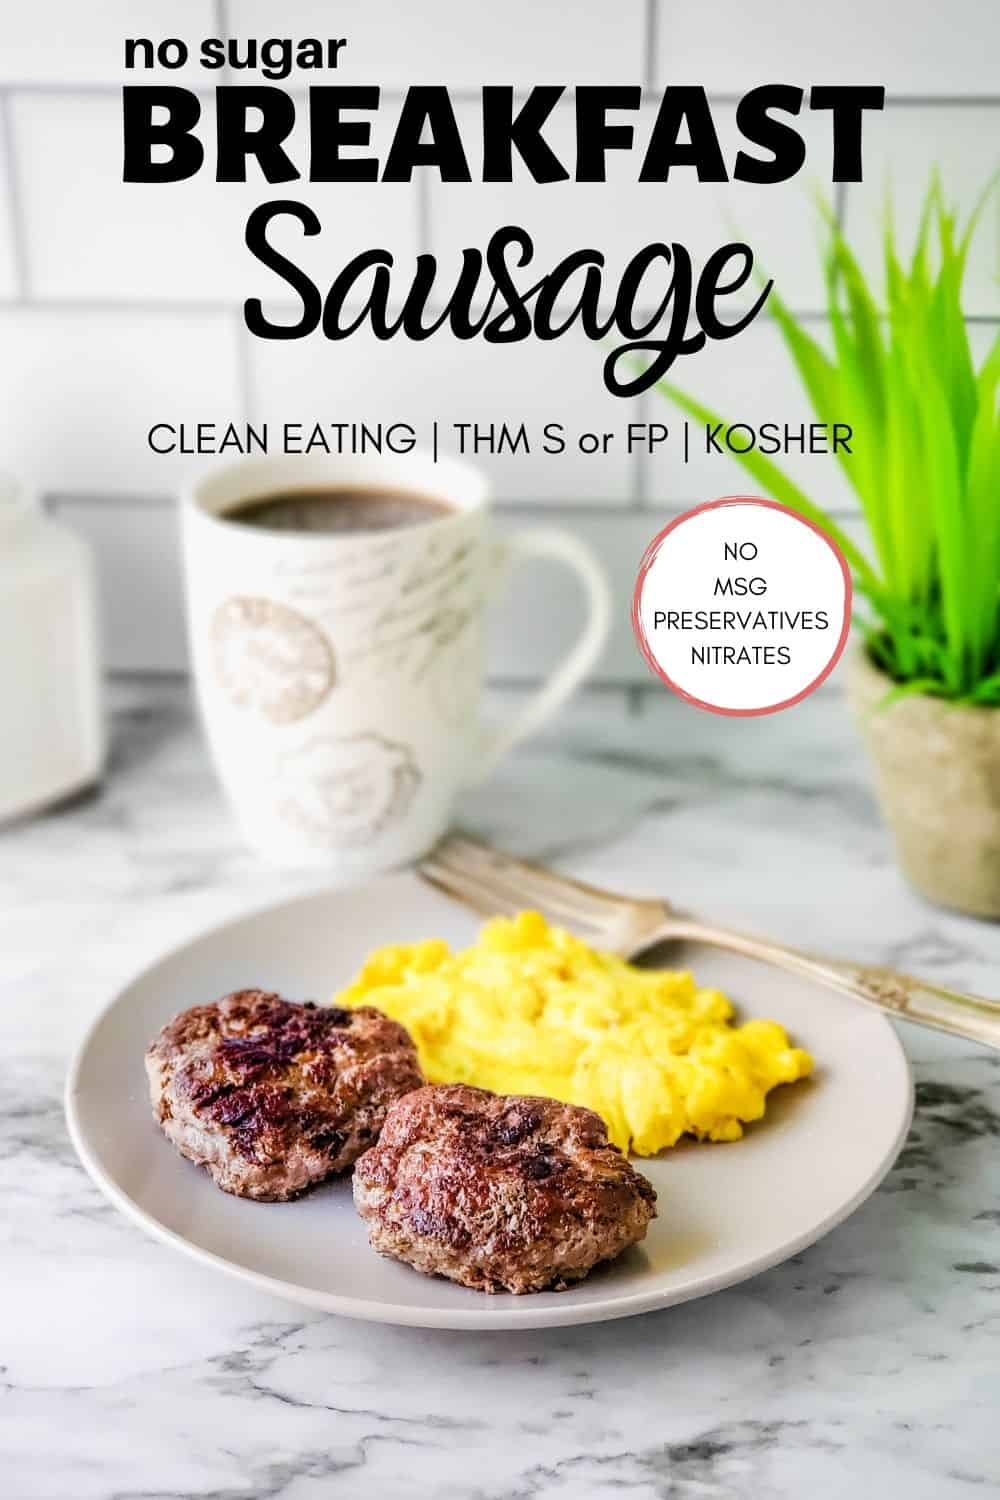 Looking for a sugar free breakfast sausage with clean-eating ingredients? You just found it! Make my easy breakfast sausage recipe to suit THM S or FP, and it's also Deep S, Kosher, and Keto friendly! NO sugar, preservatives, MSG or other unhealthy ingredients. #thm #homemade #breakfastsausage #cleaneating #keto #kosher @ohsweetmercy